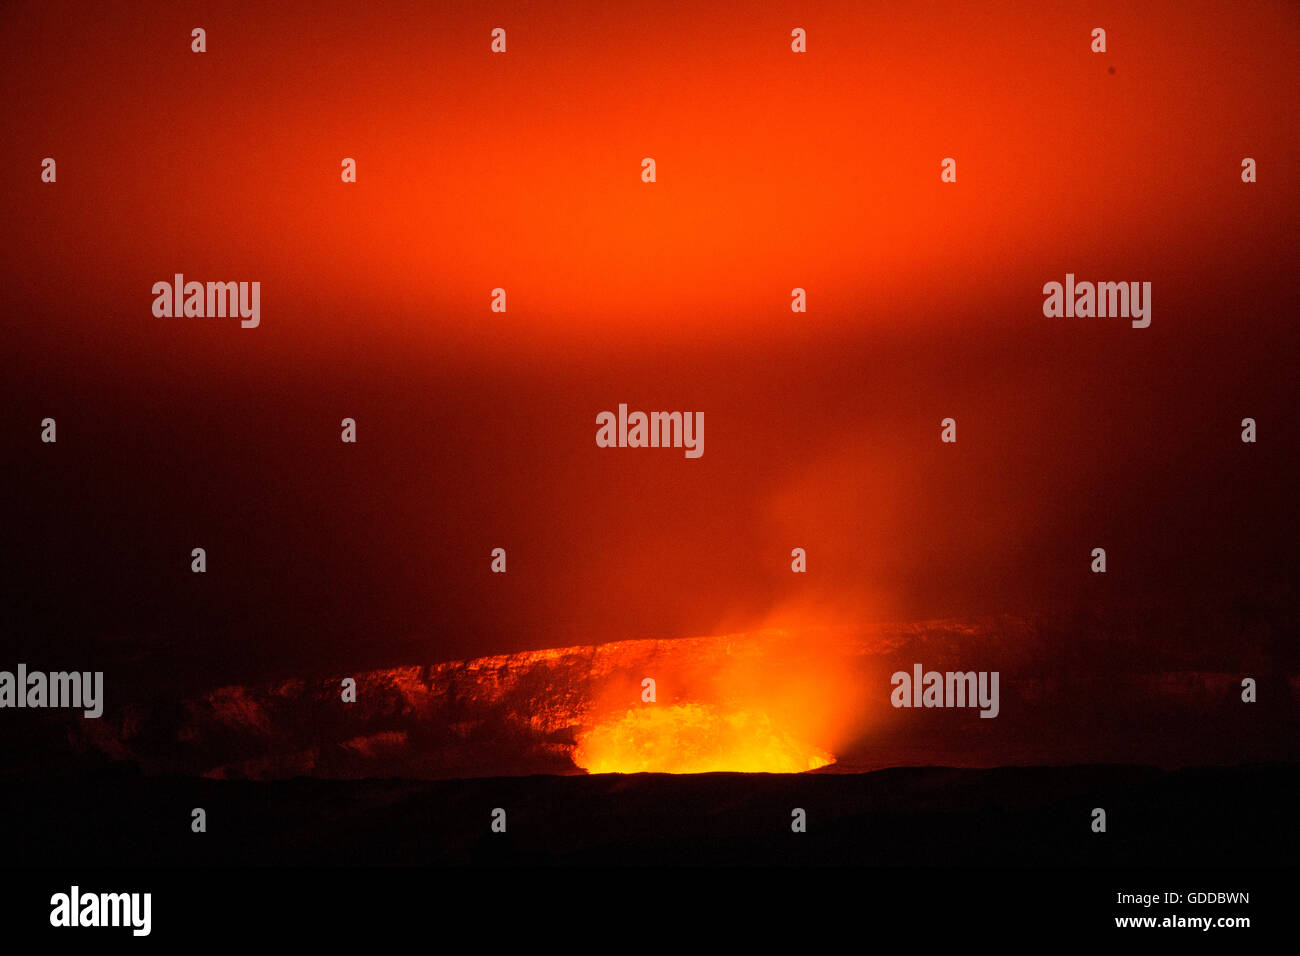 Big Island,Kilauea,volcano,Caldera,Vulcanoes,National Park,Big Island,USA,Hawaii,America,Volcanical,lava, - Stock Image